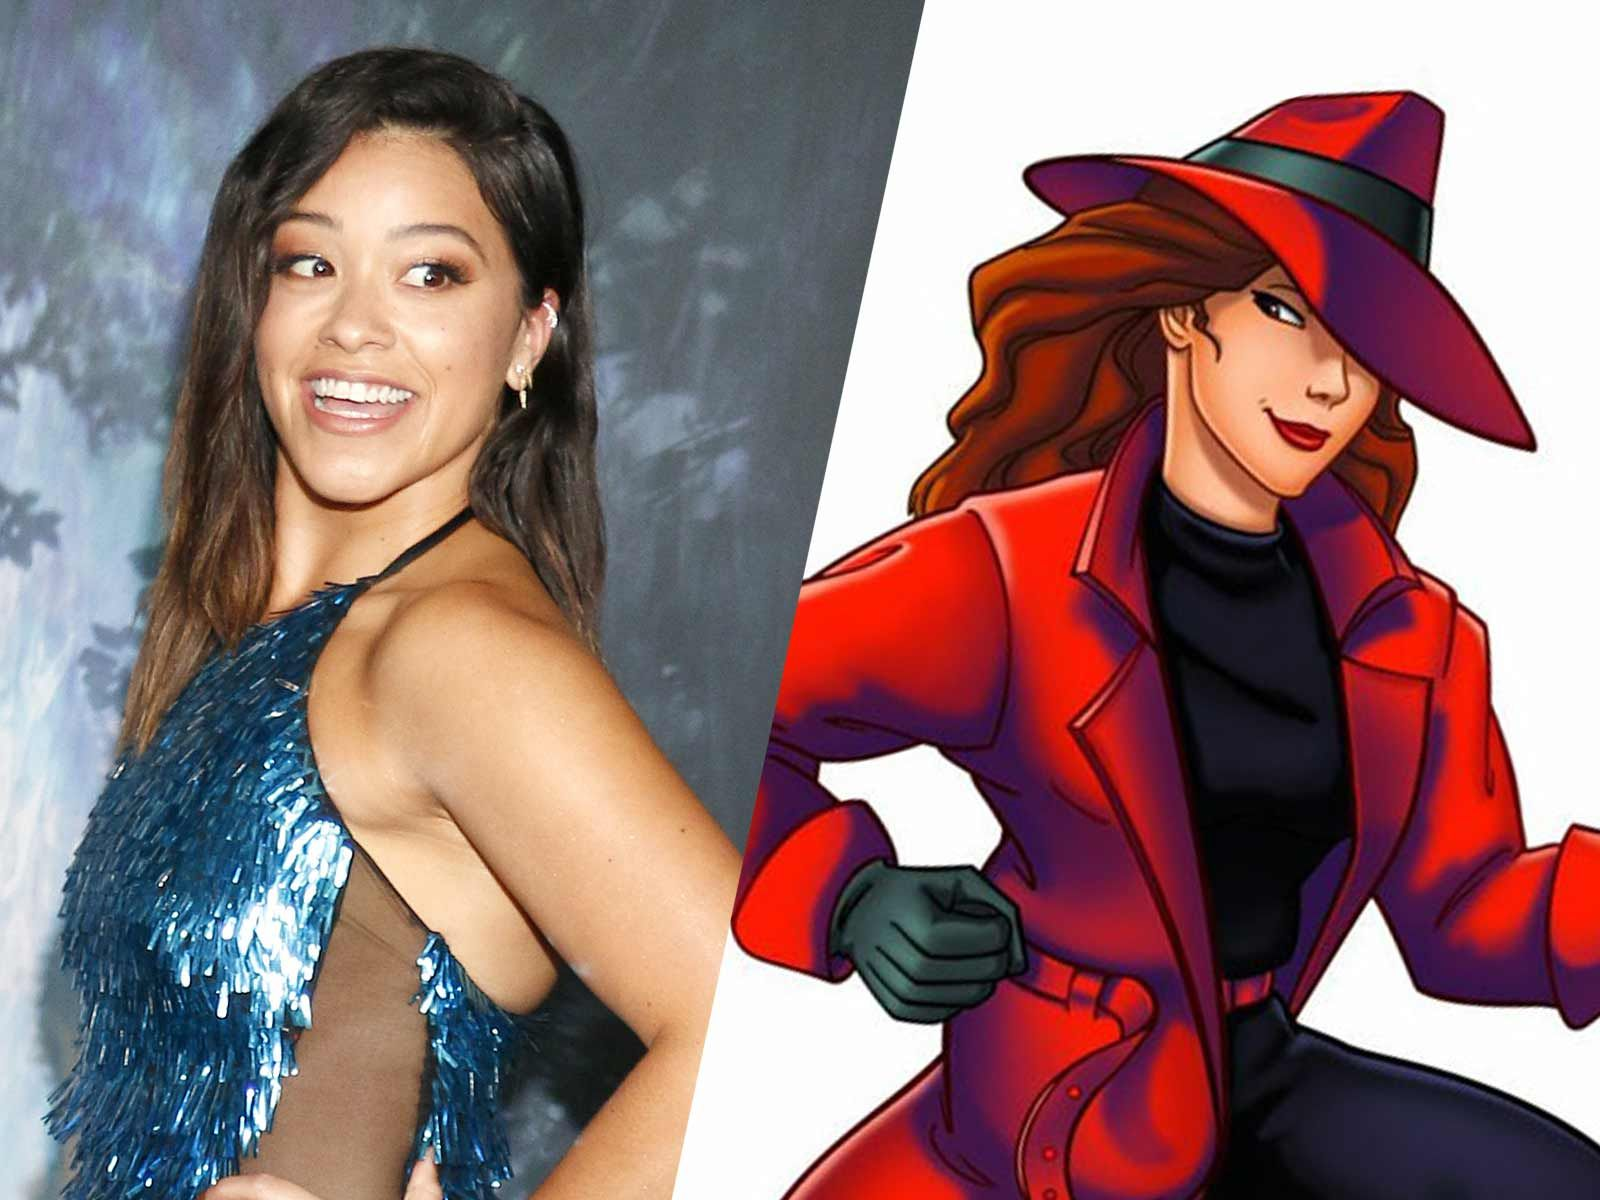 Gina Rodriguez Is Starring as Carmen Sandiego in Live-Action